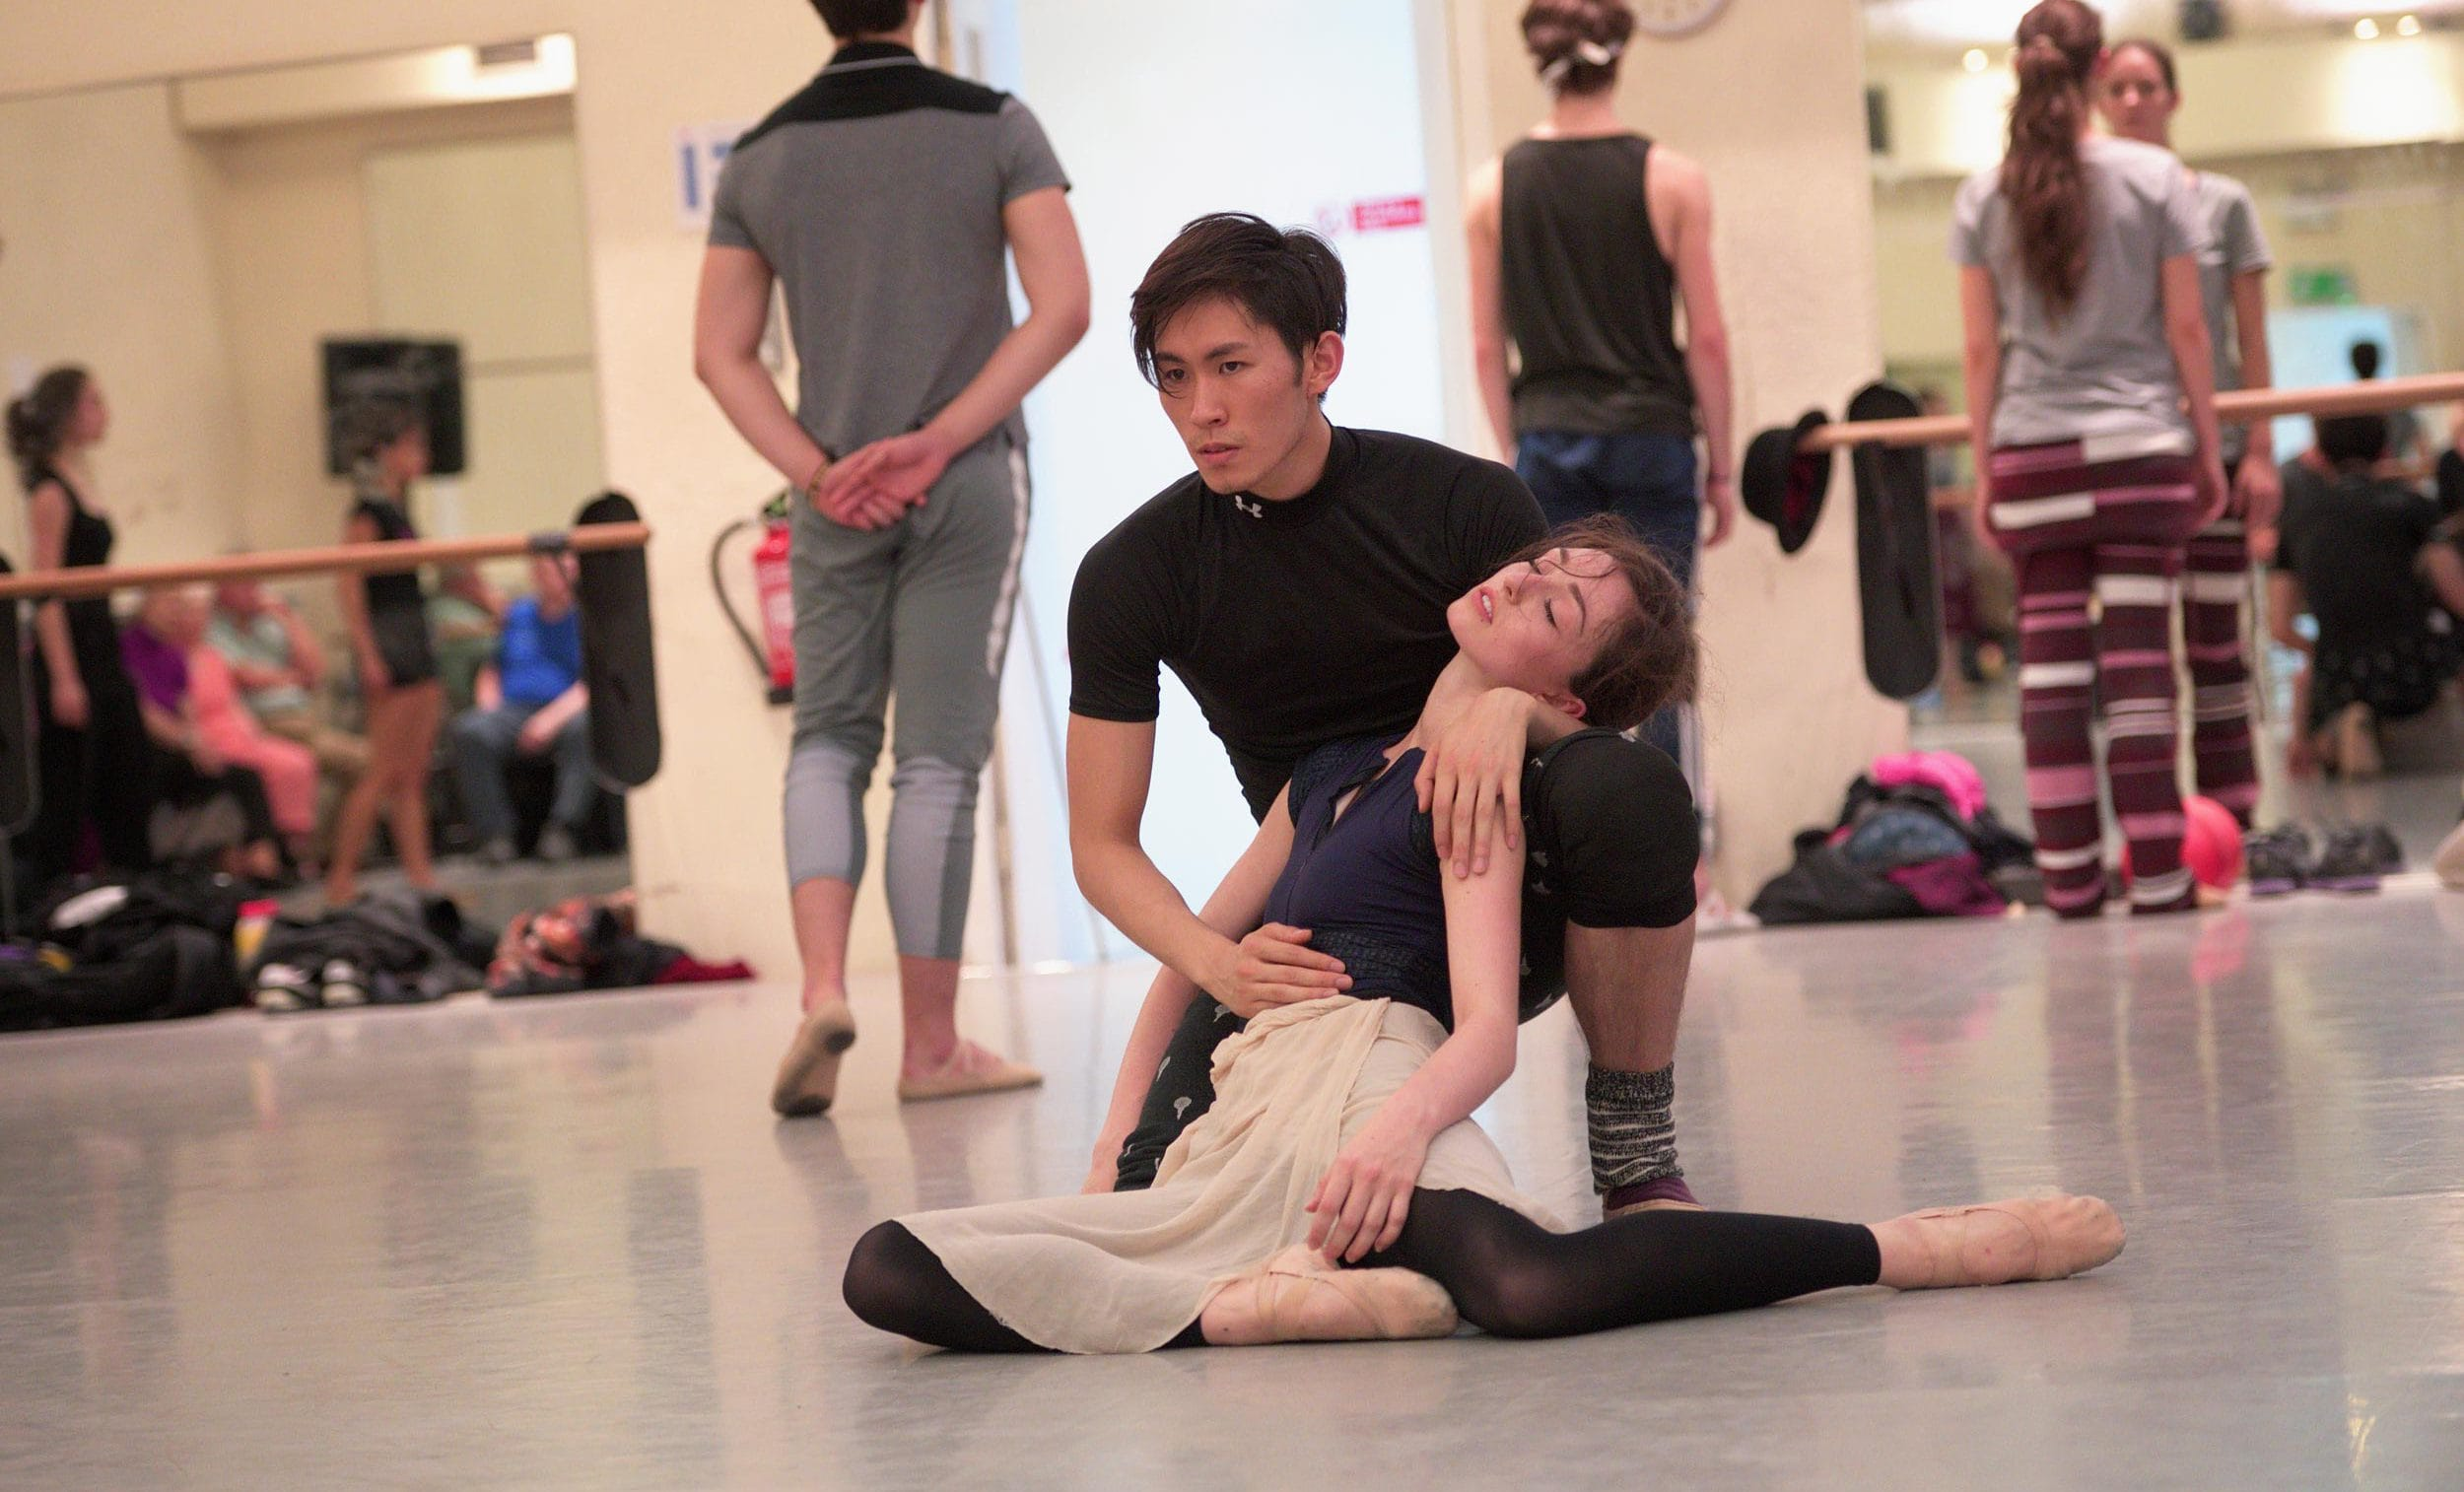 Junior-Soloist-Ken-Saruhashi-and-First-Artist-Madison-Keesler-©-Laurent-Liotardo